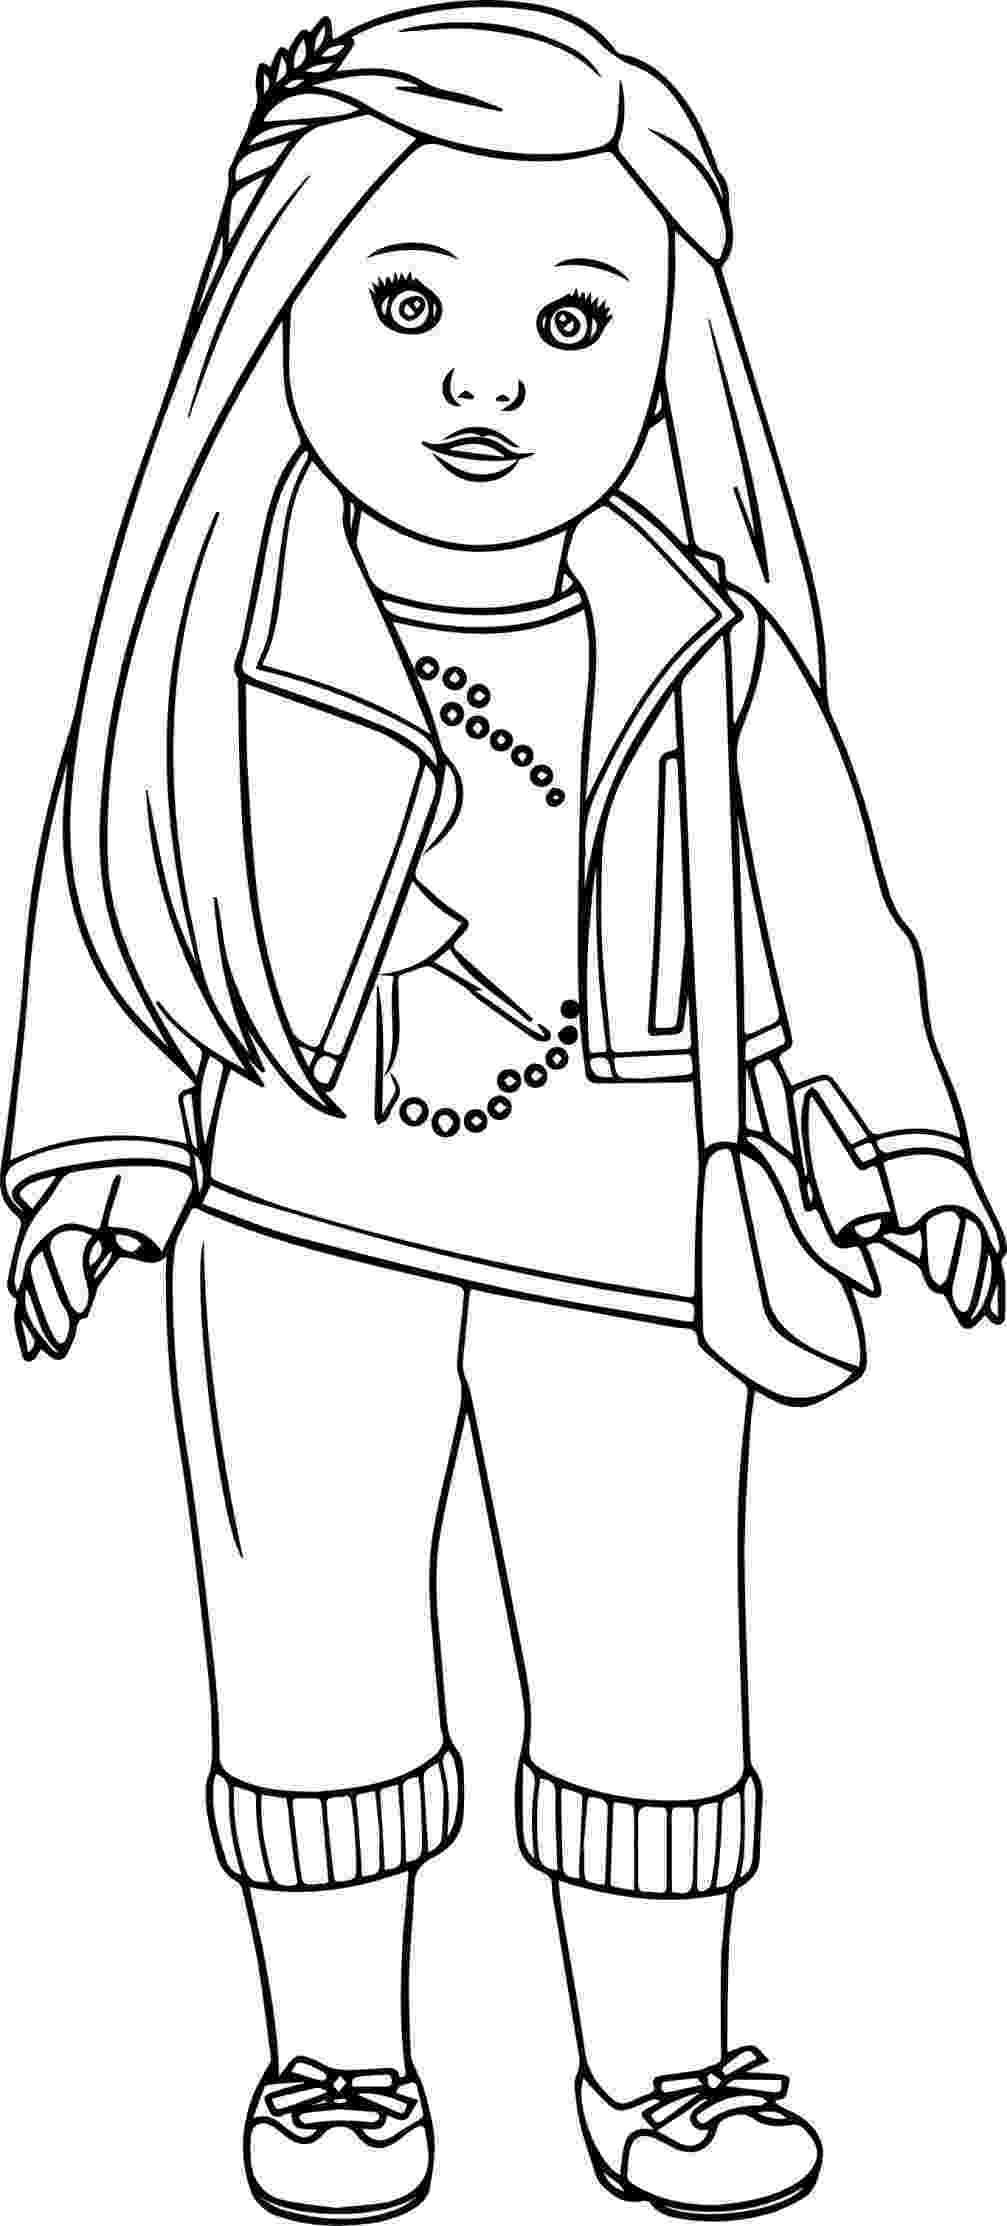 girls color pages cute girl coloring pages to download and print for free color girls pages 1 1